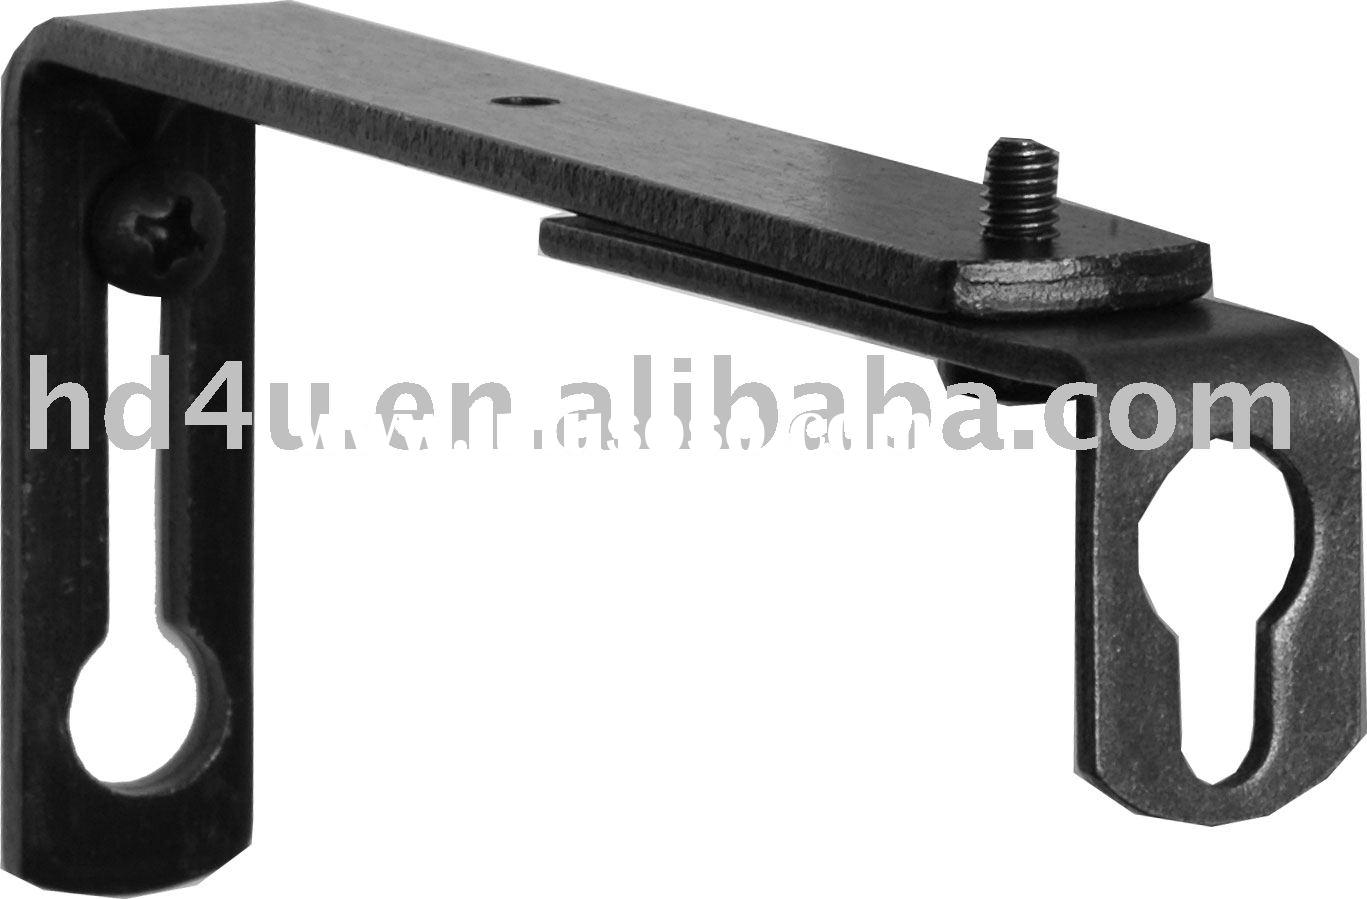 Metal Curtain Wall Bracket Or Installation Bracket And